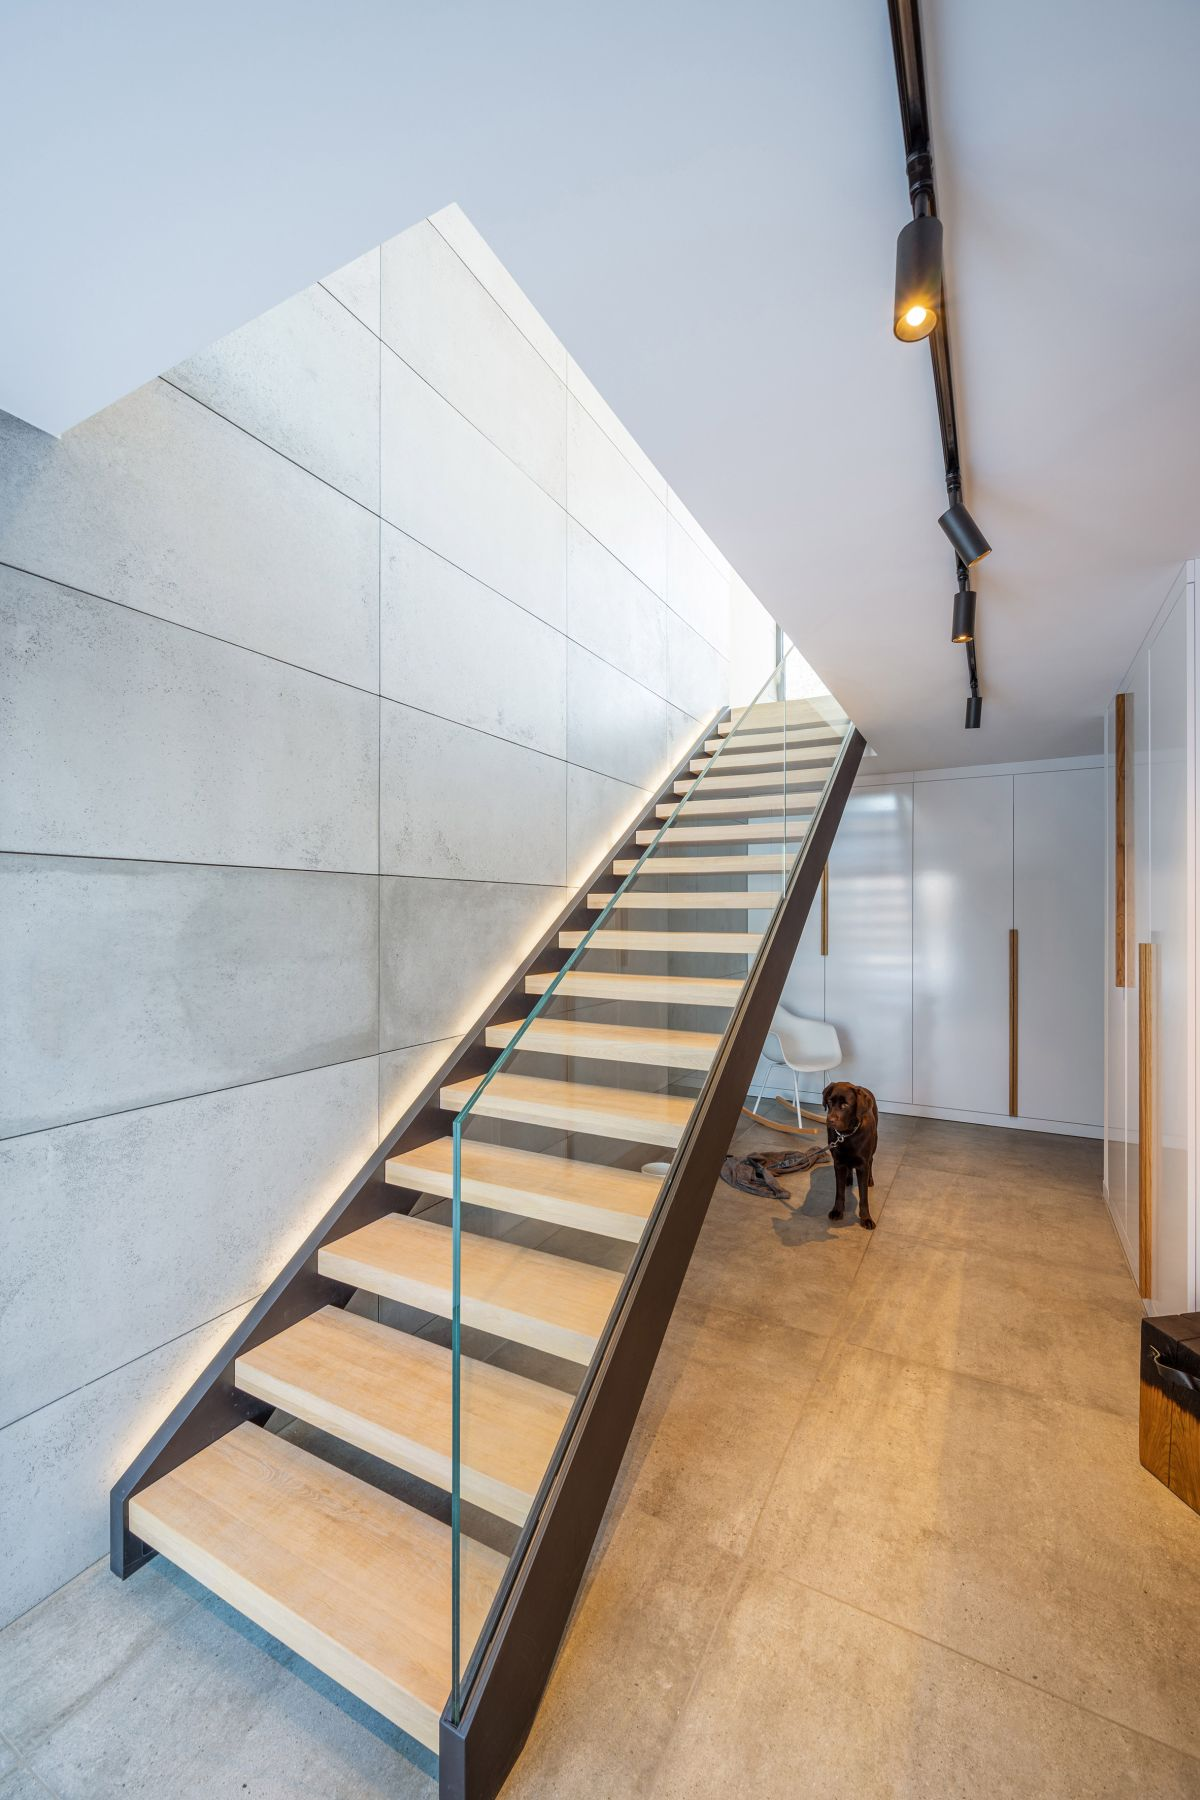 The two floors are connected by a simple staircase with transparent glass railings